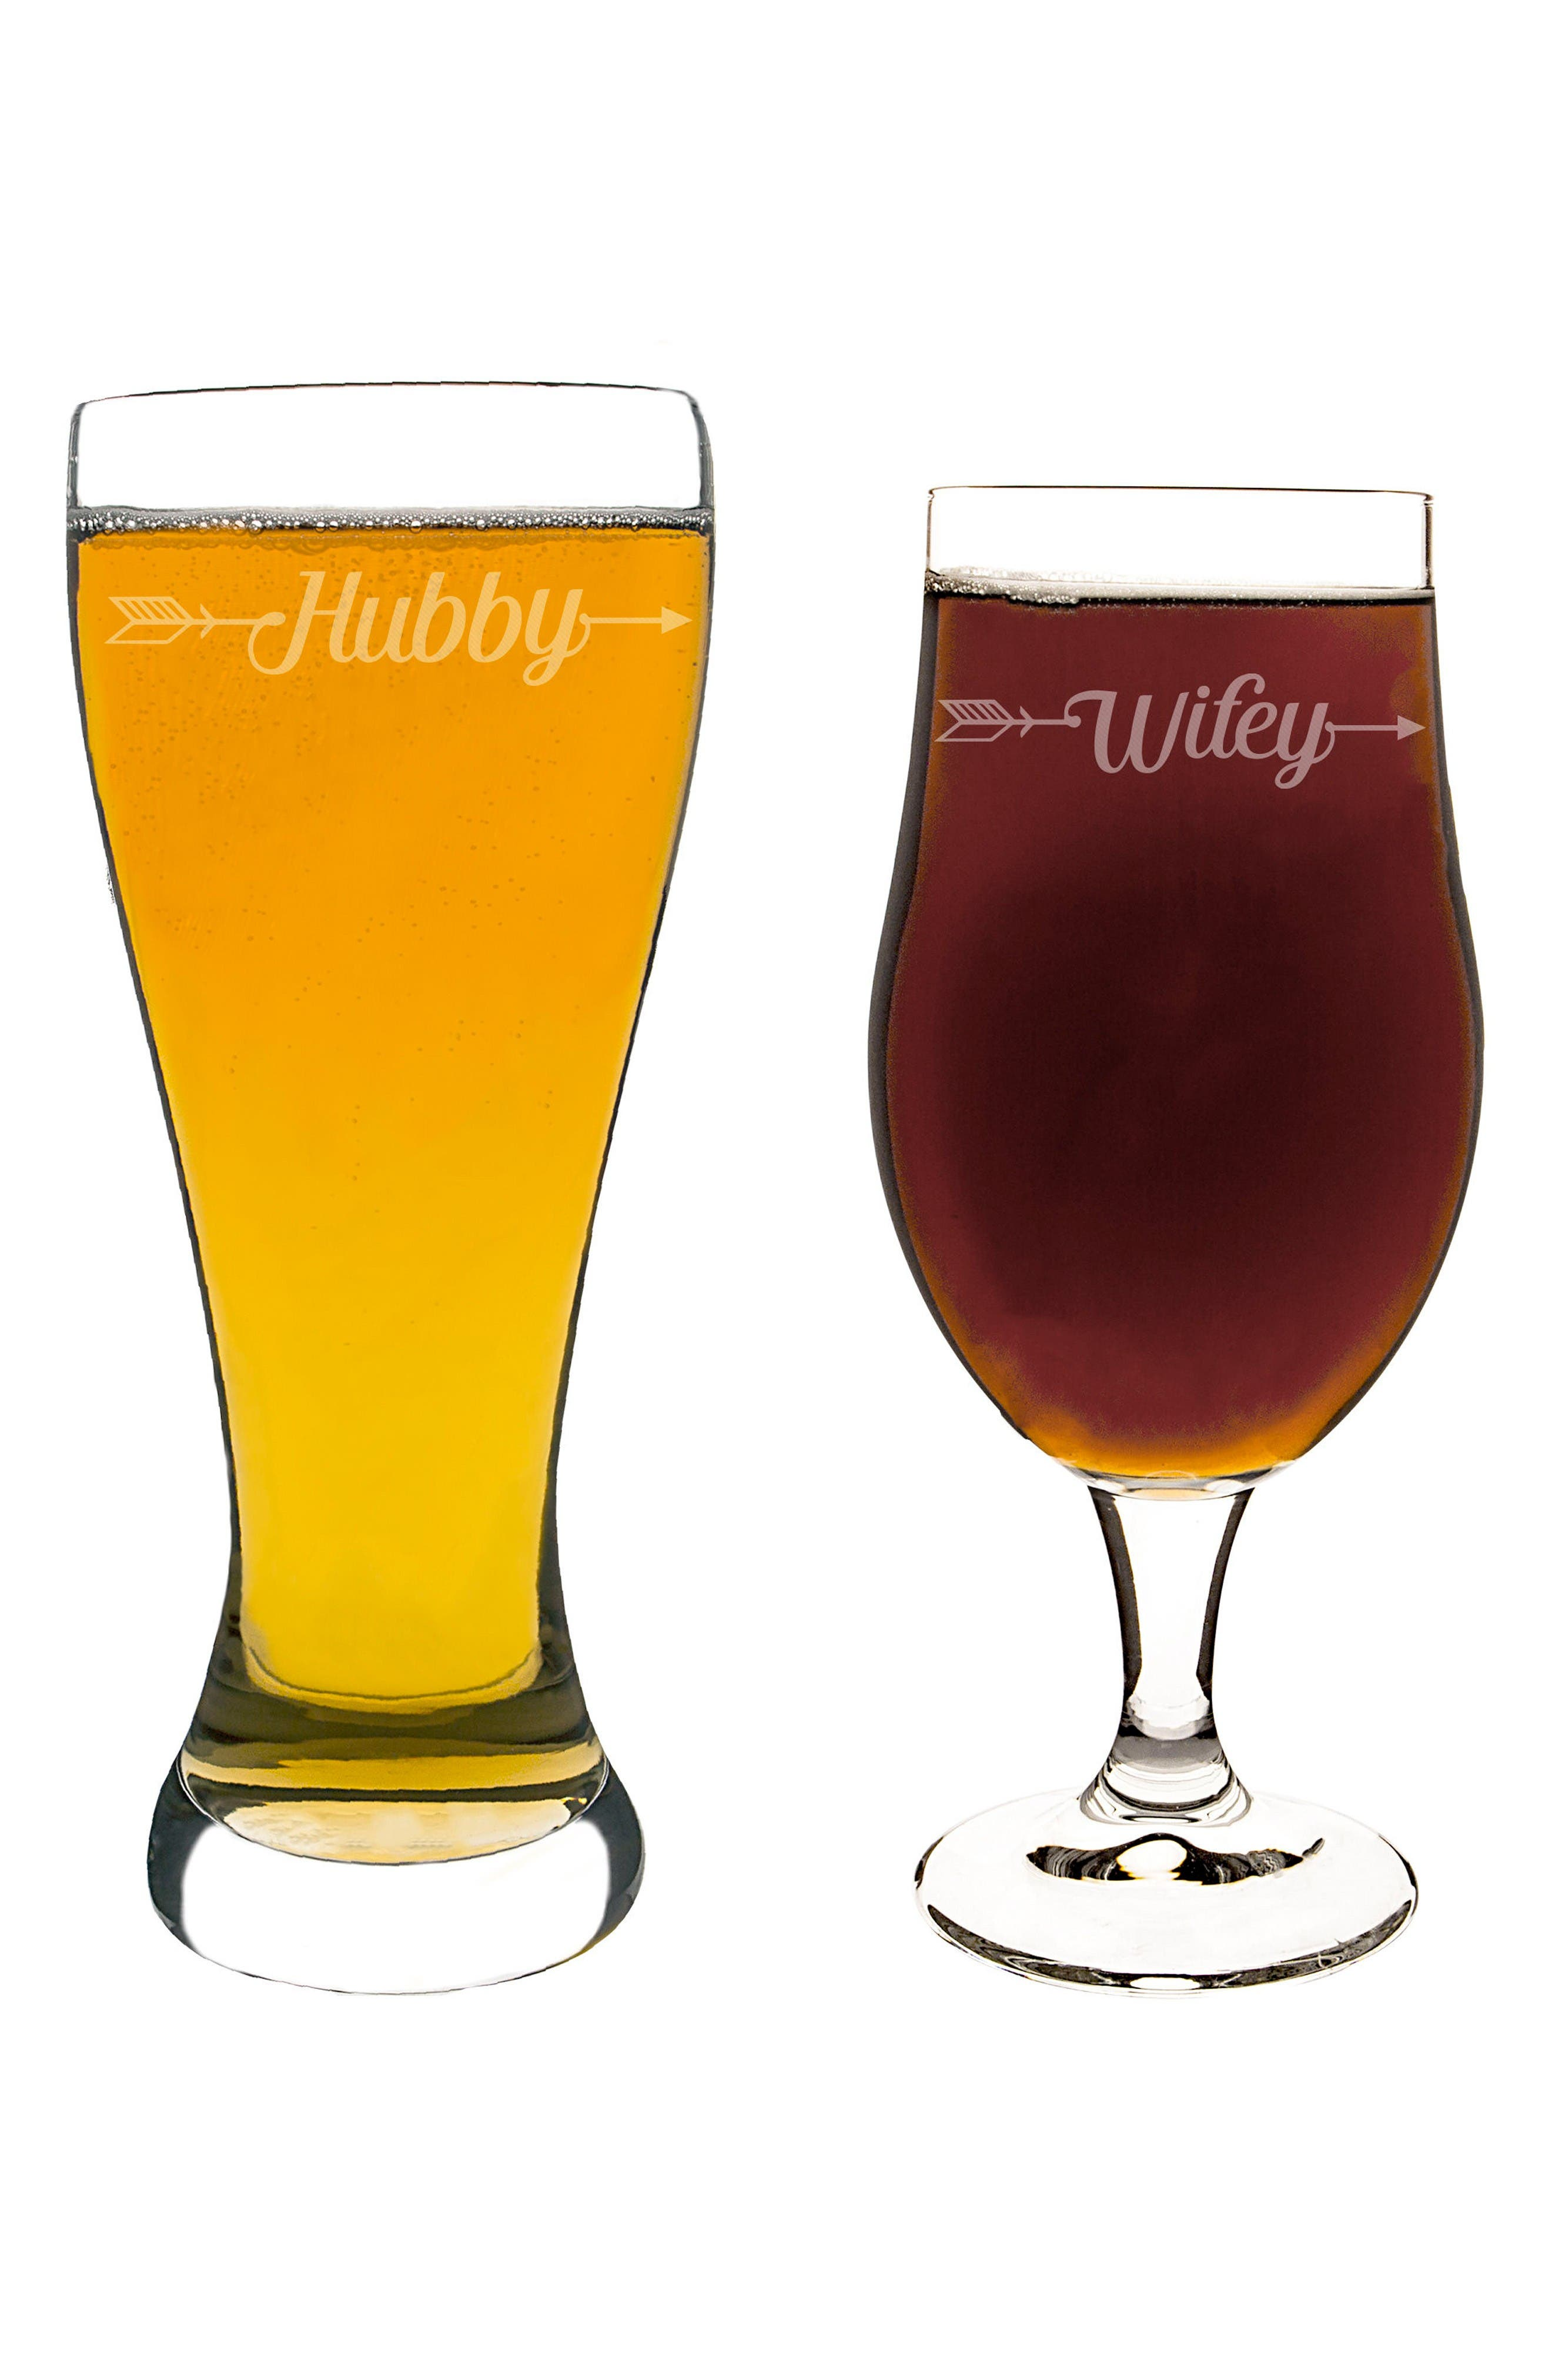 Main Image - CATHY'S CONCEPTS Hubby/Wifey Set of 2 Pilsner Glasses